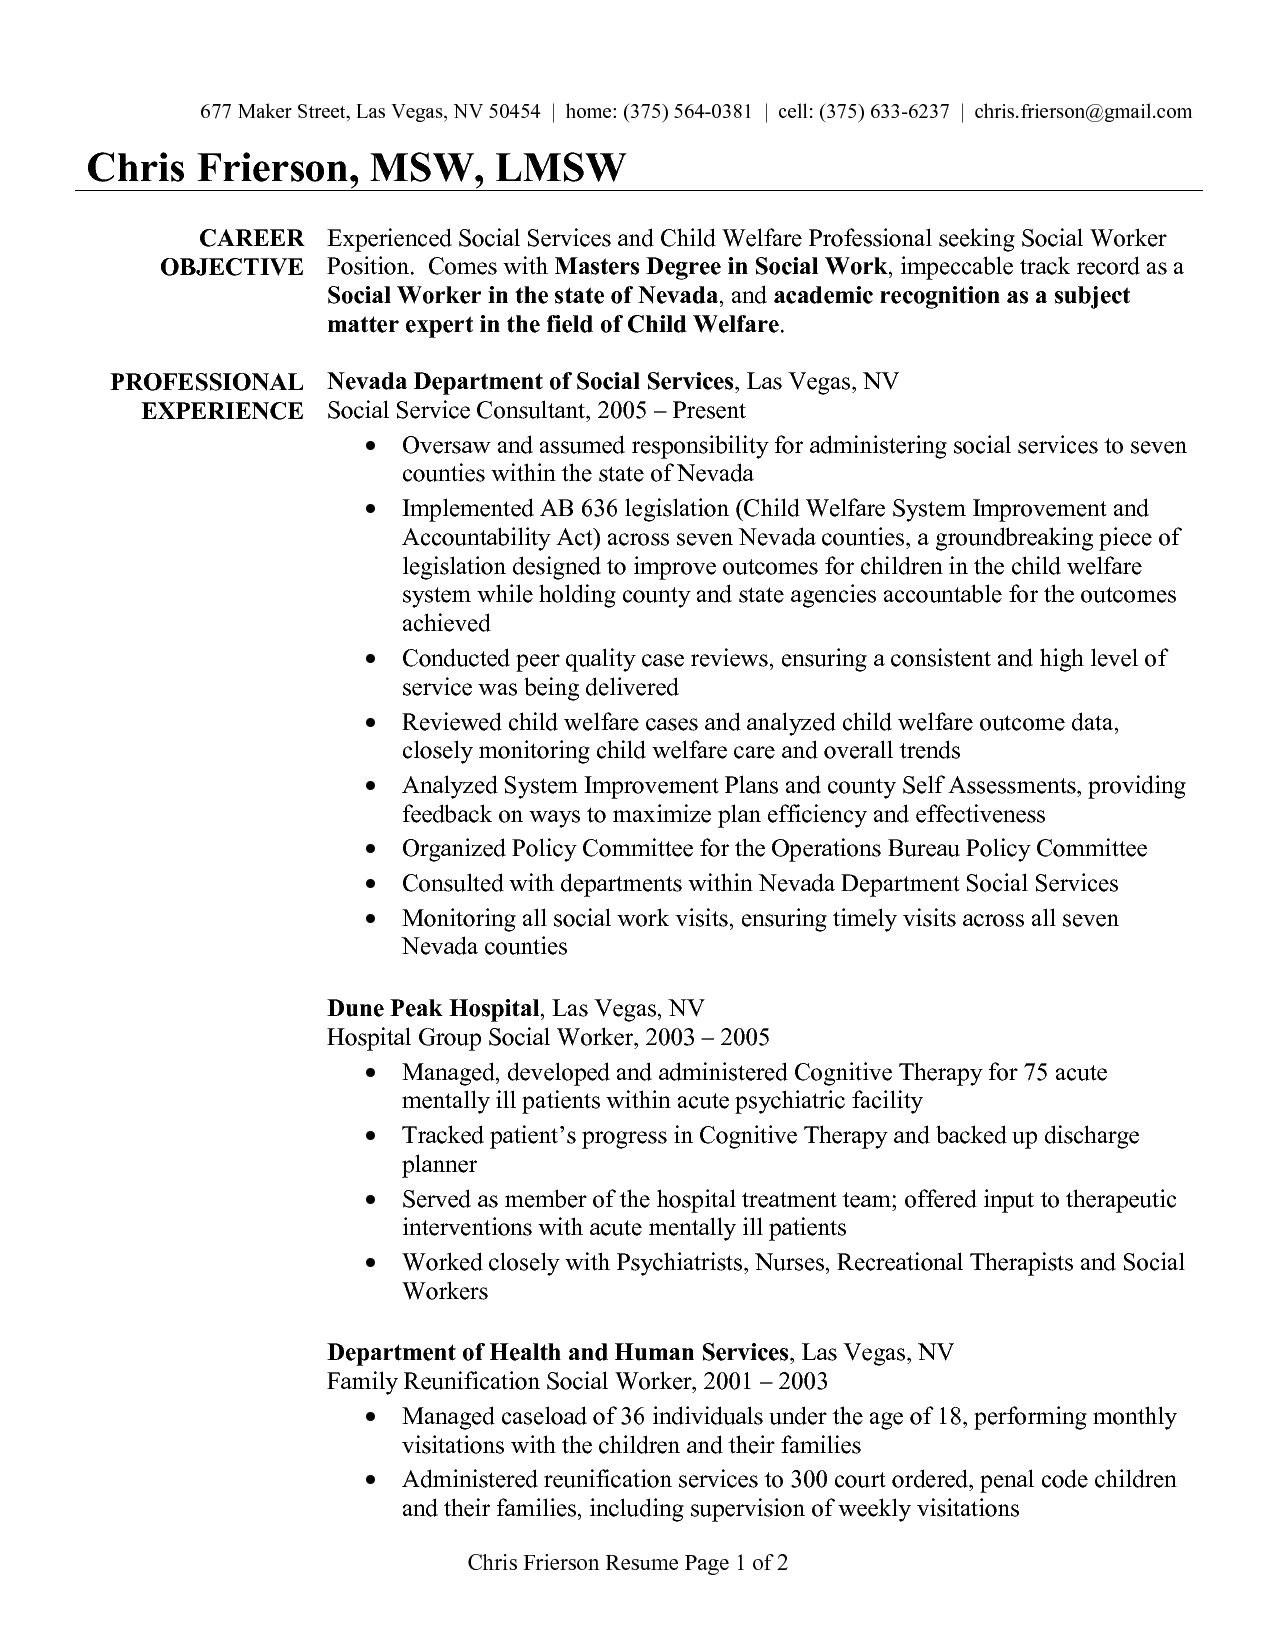 work resume layout